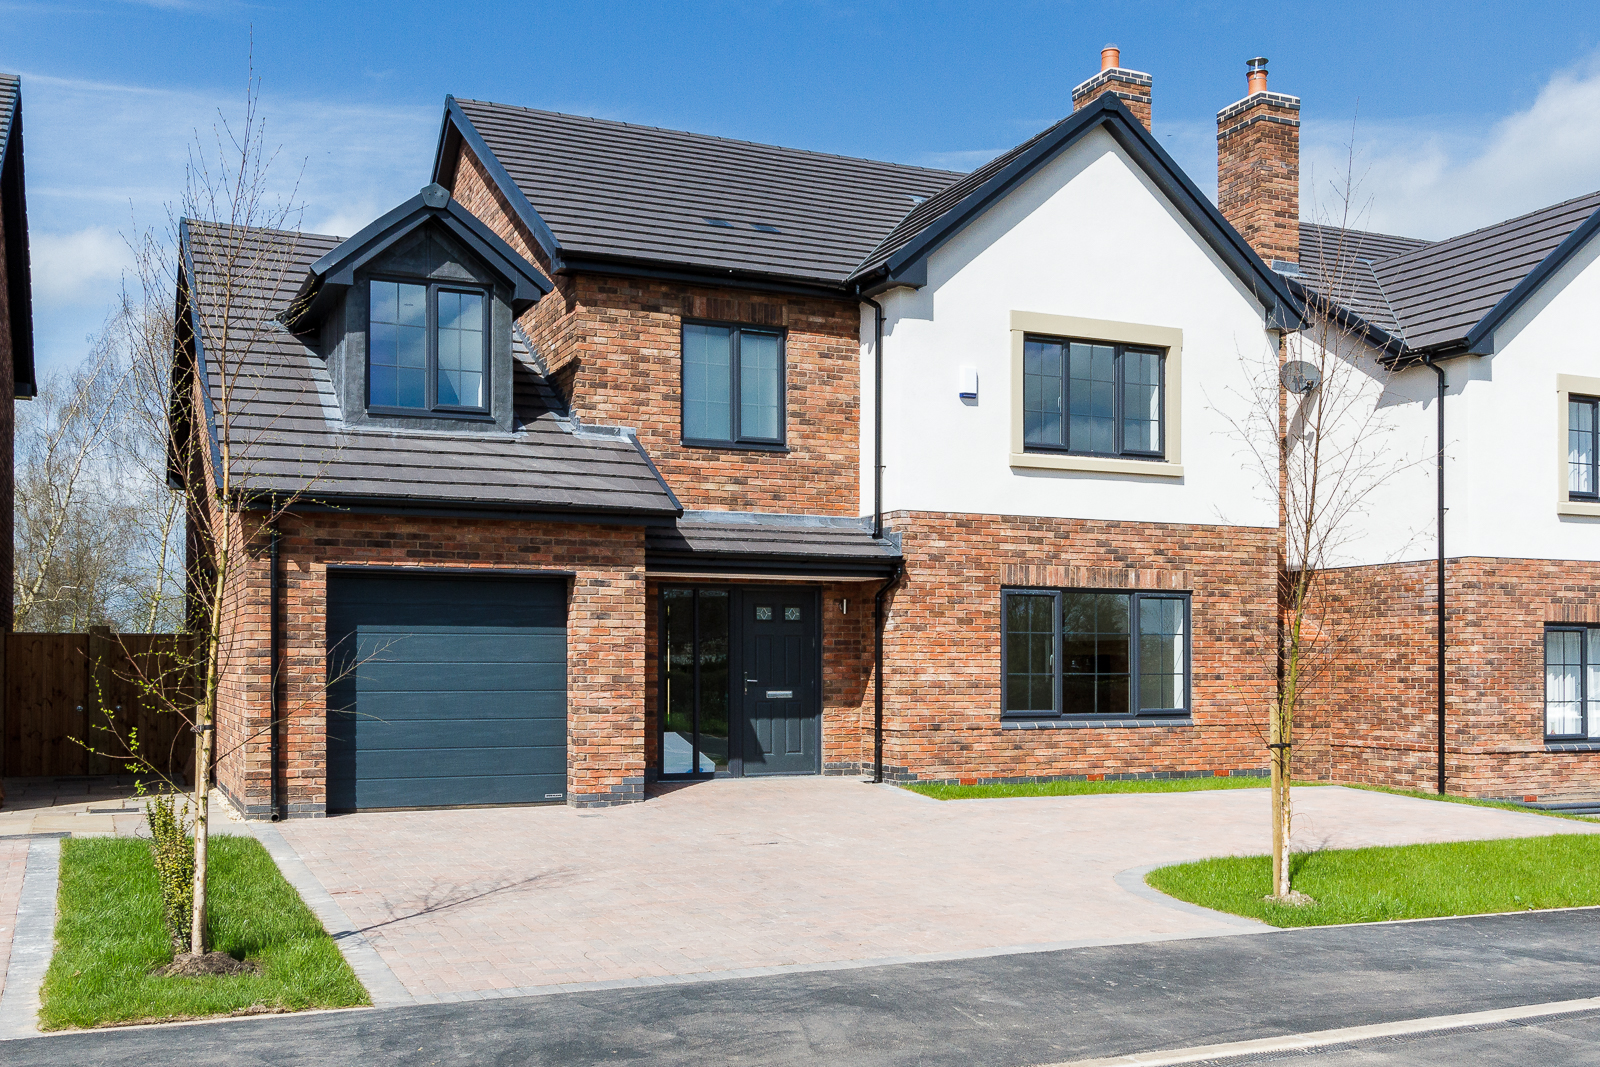 4 Bedroom Detached House For Sale In Cheshire Full Brick Brand New Home On Wiring To Garage An Epc Is Not Available This Property